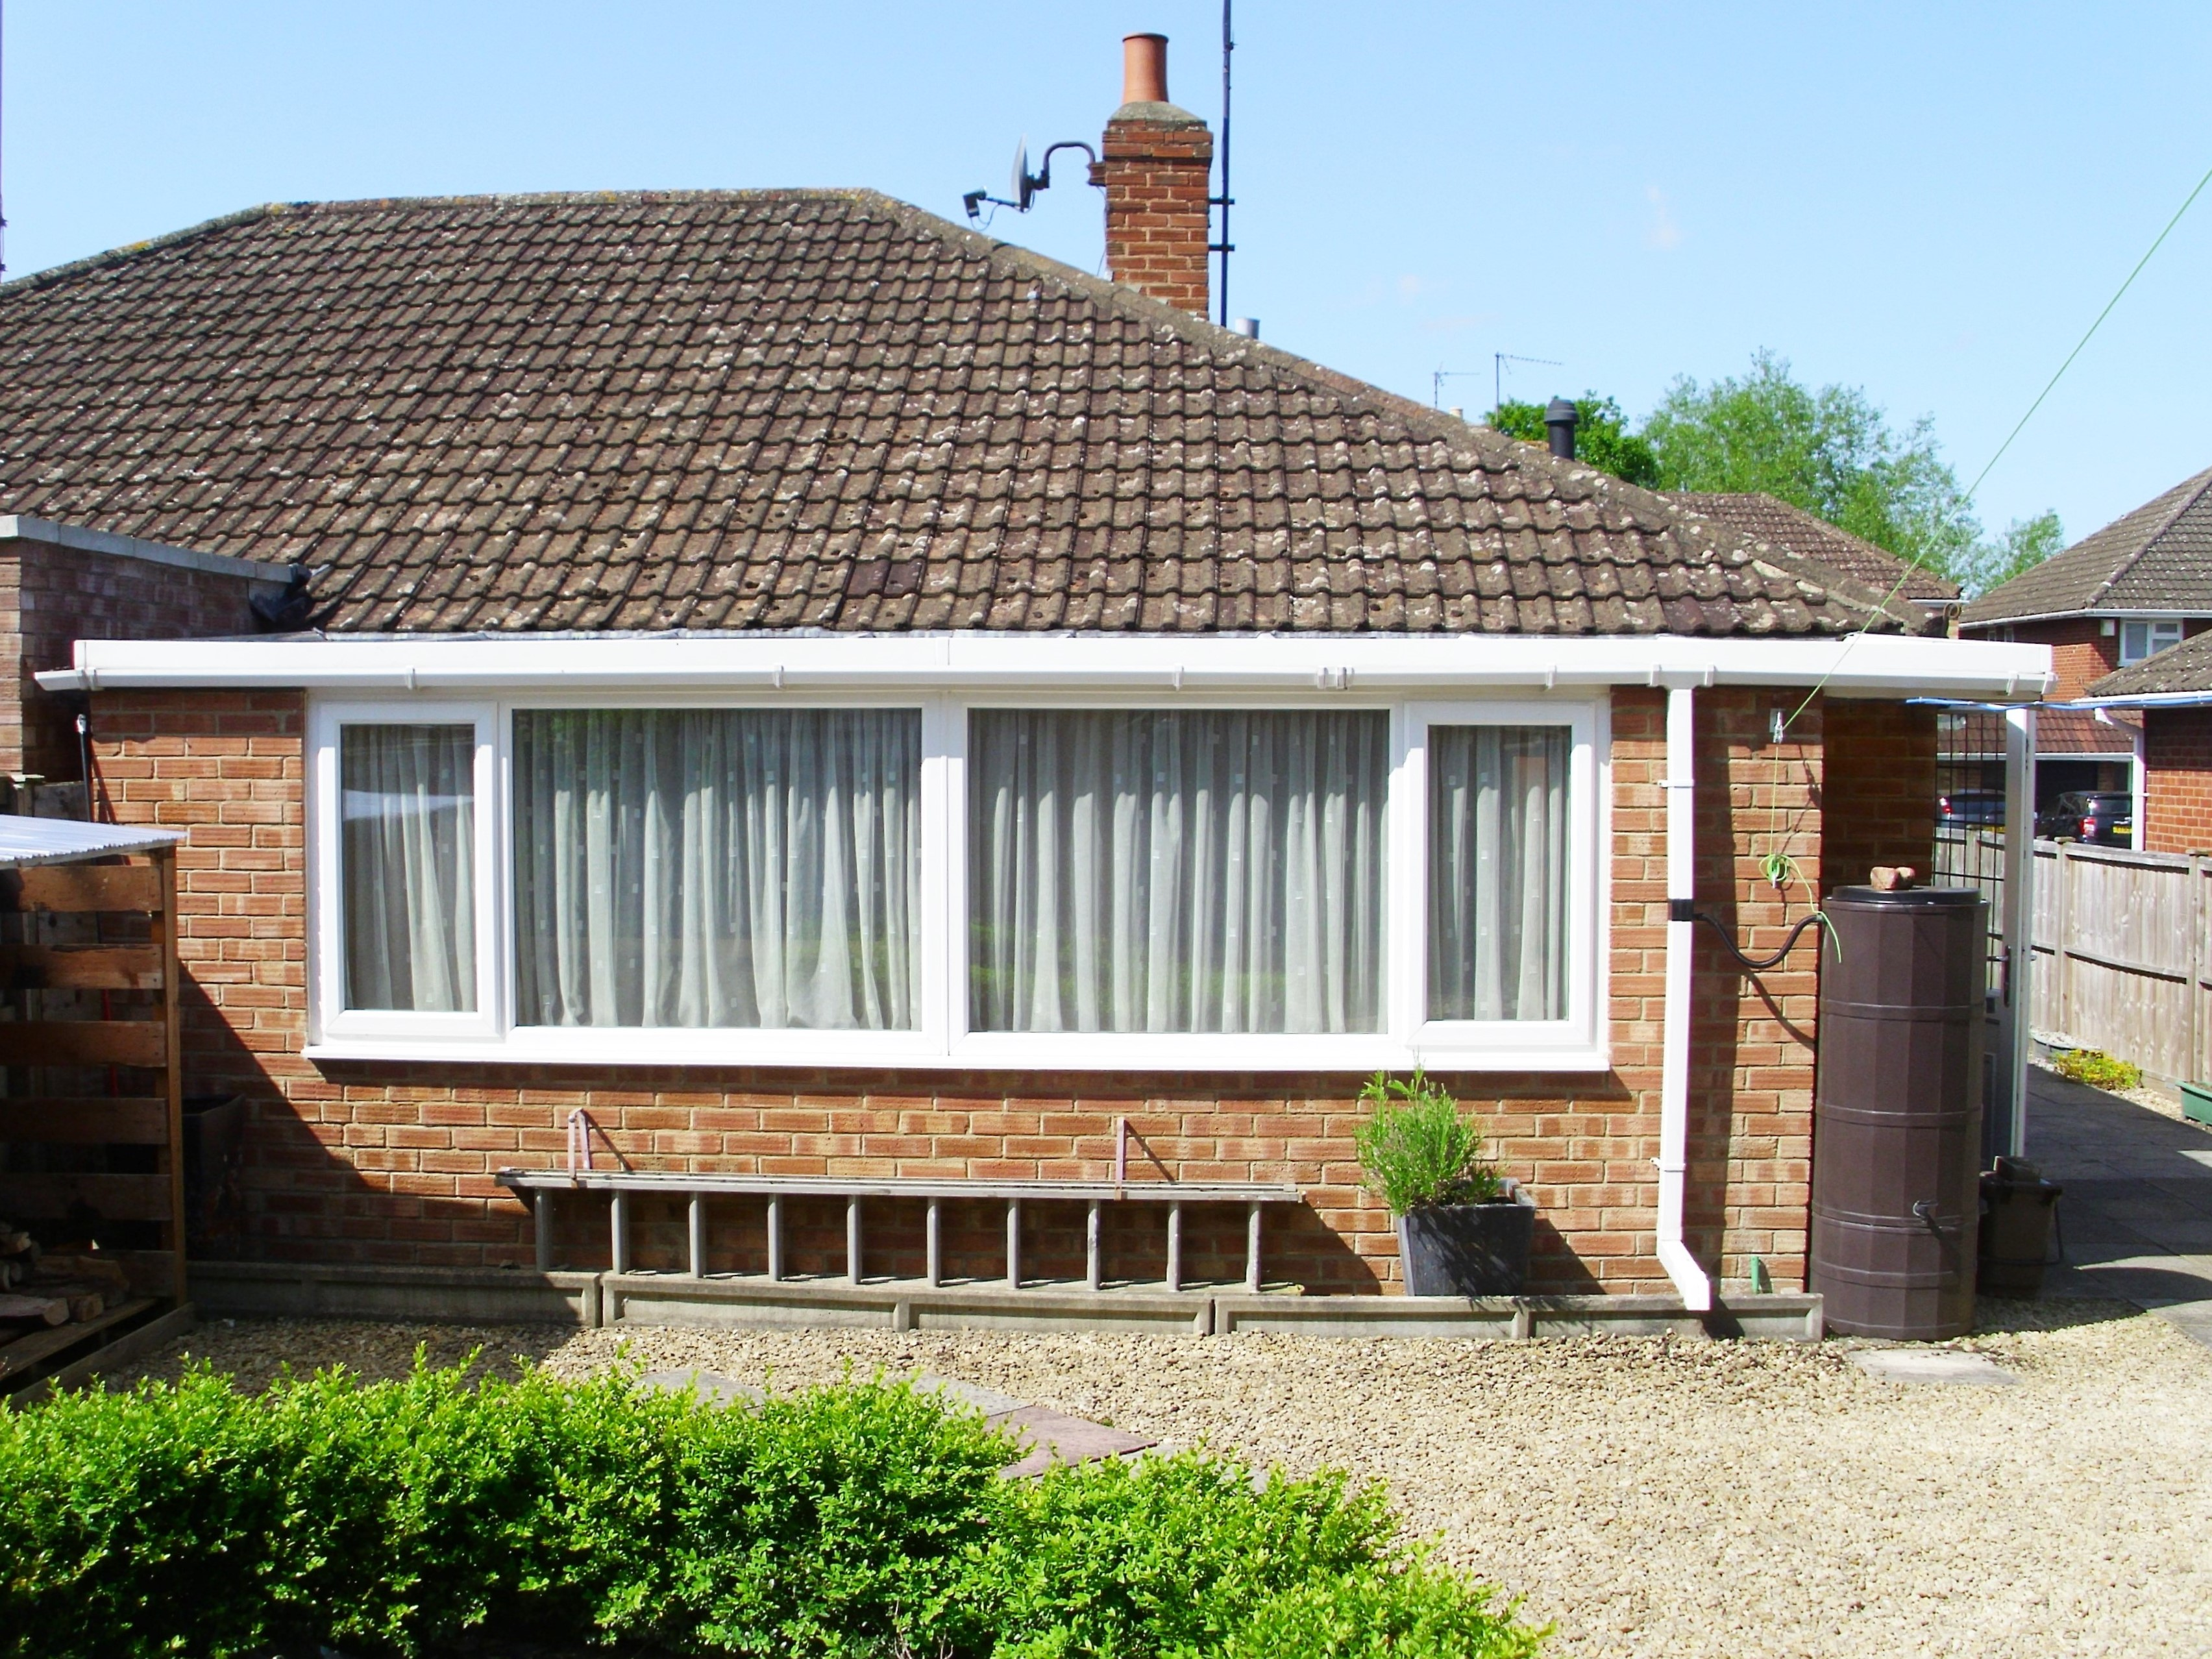 bedroom unfurnished bungalow to rent on bodiam avenue gloucester